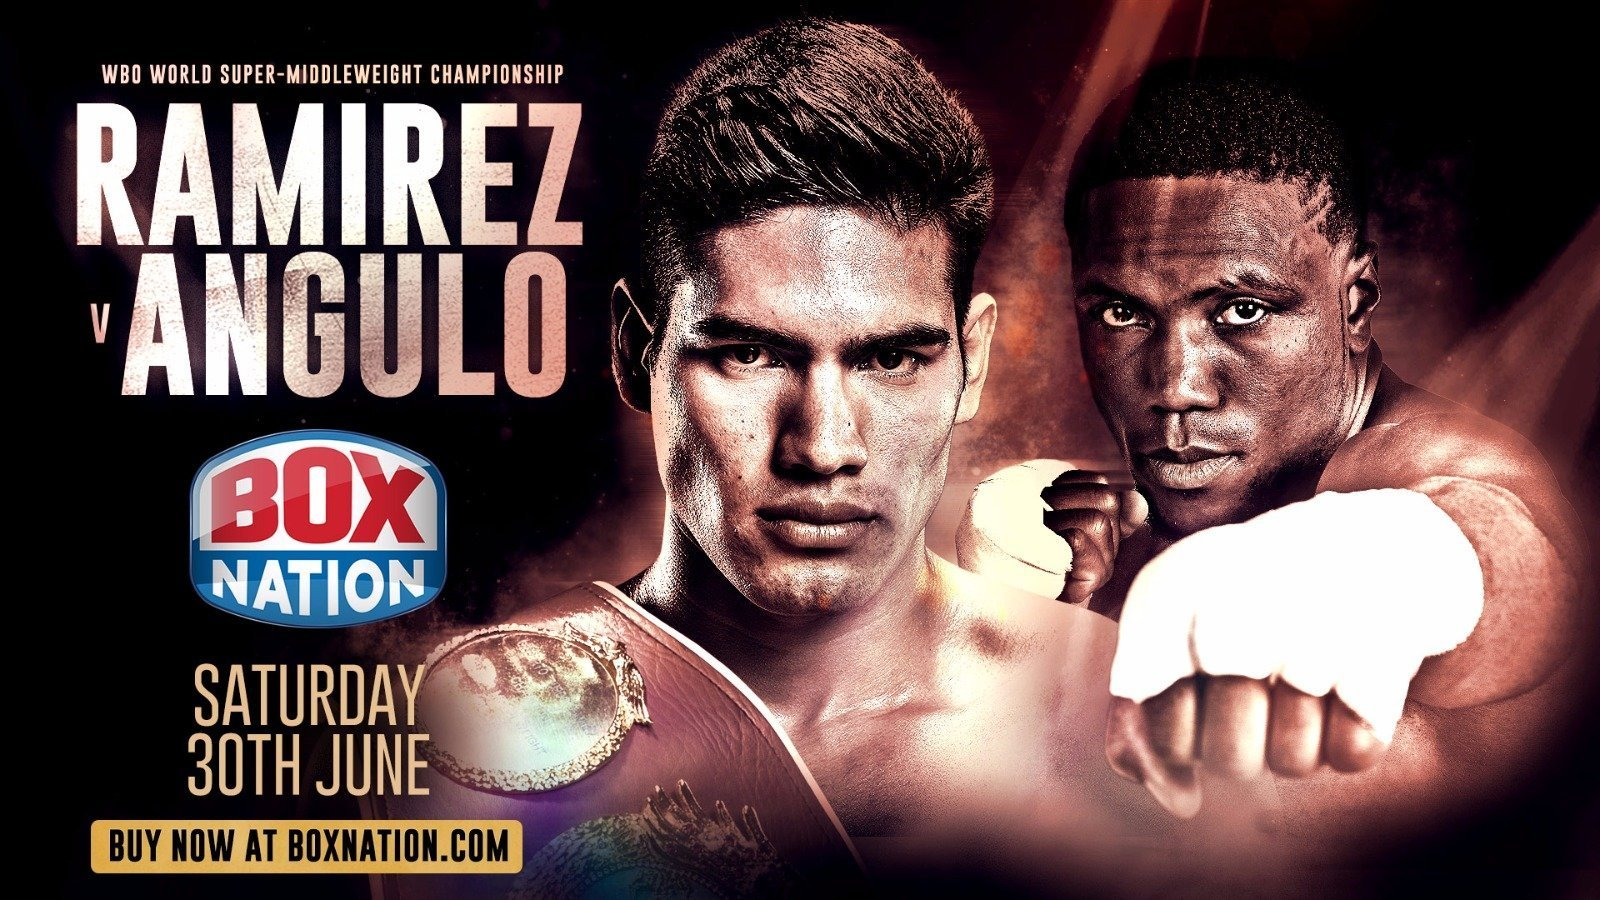 Gilberto Ramirez - This Saturday night live on ESPN, Gilberto Ramirez defends his super middleweight strap against Roamer Alexis Angulo. On the surface it appears to be a battle of unbeaten records in a main event that's broadcasted to well over 80 million households. Dive a little deeper into the resume of Angulo and one will find a hollow slate of non de script boxers.